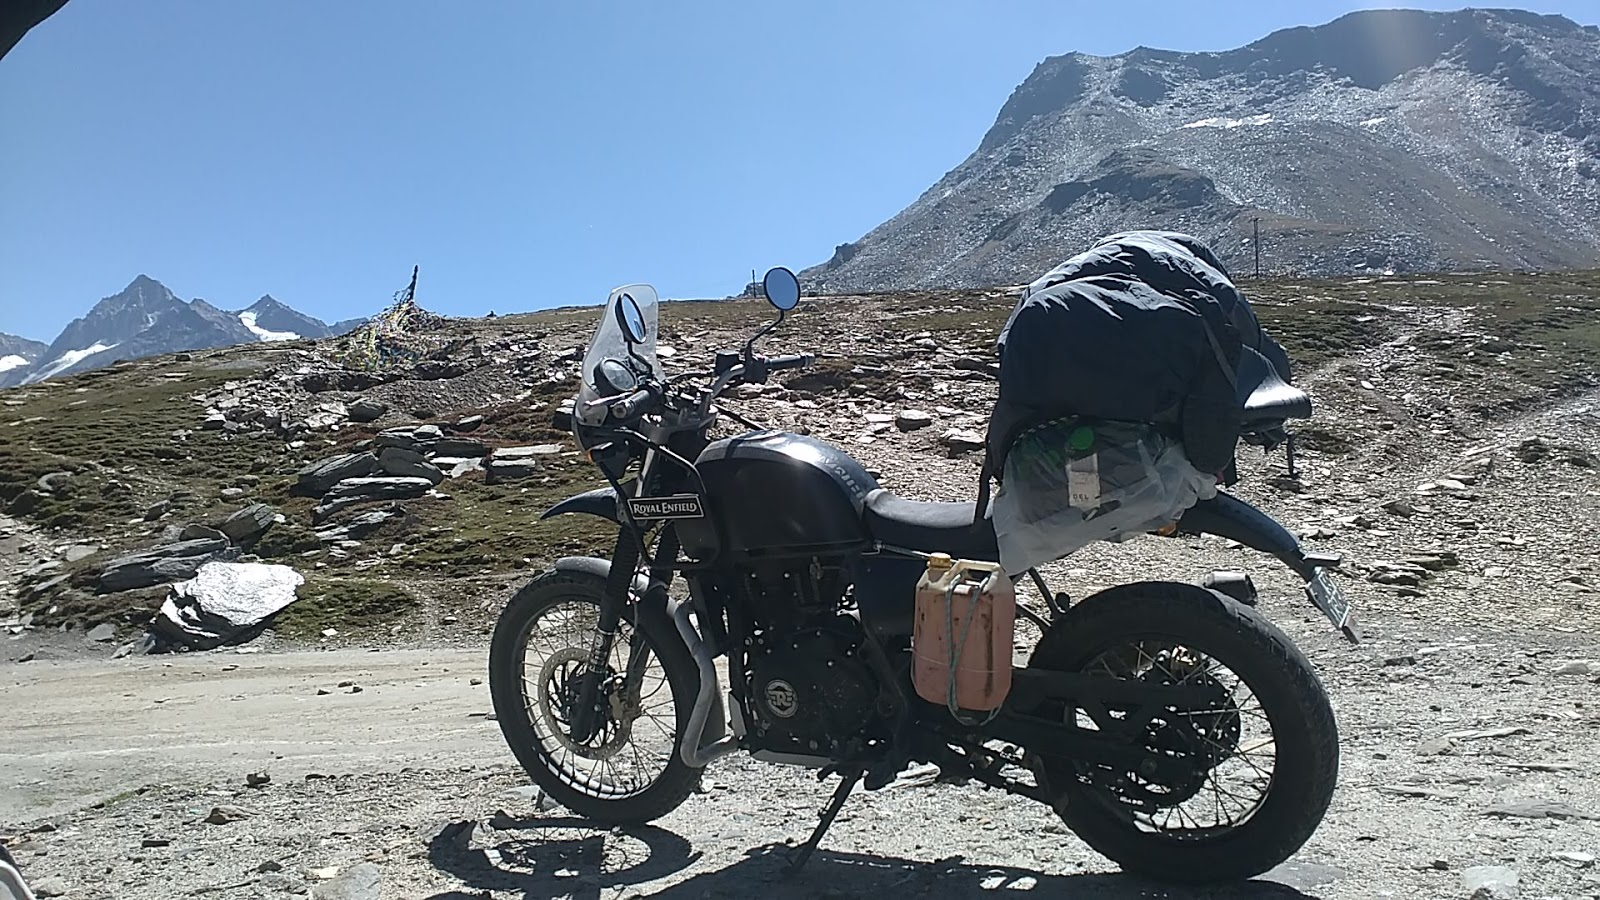 Ride in Royal Enfield in the Himalayas